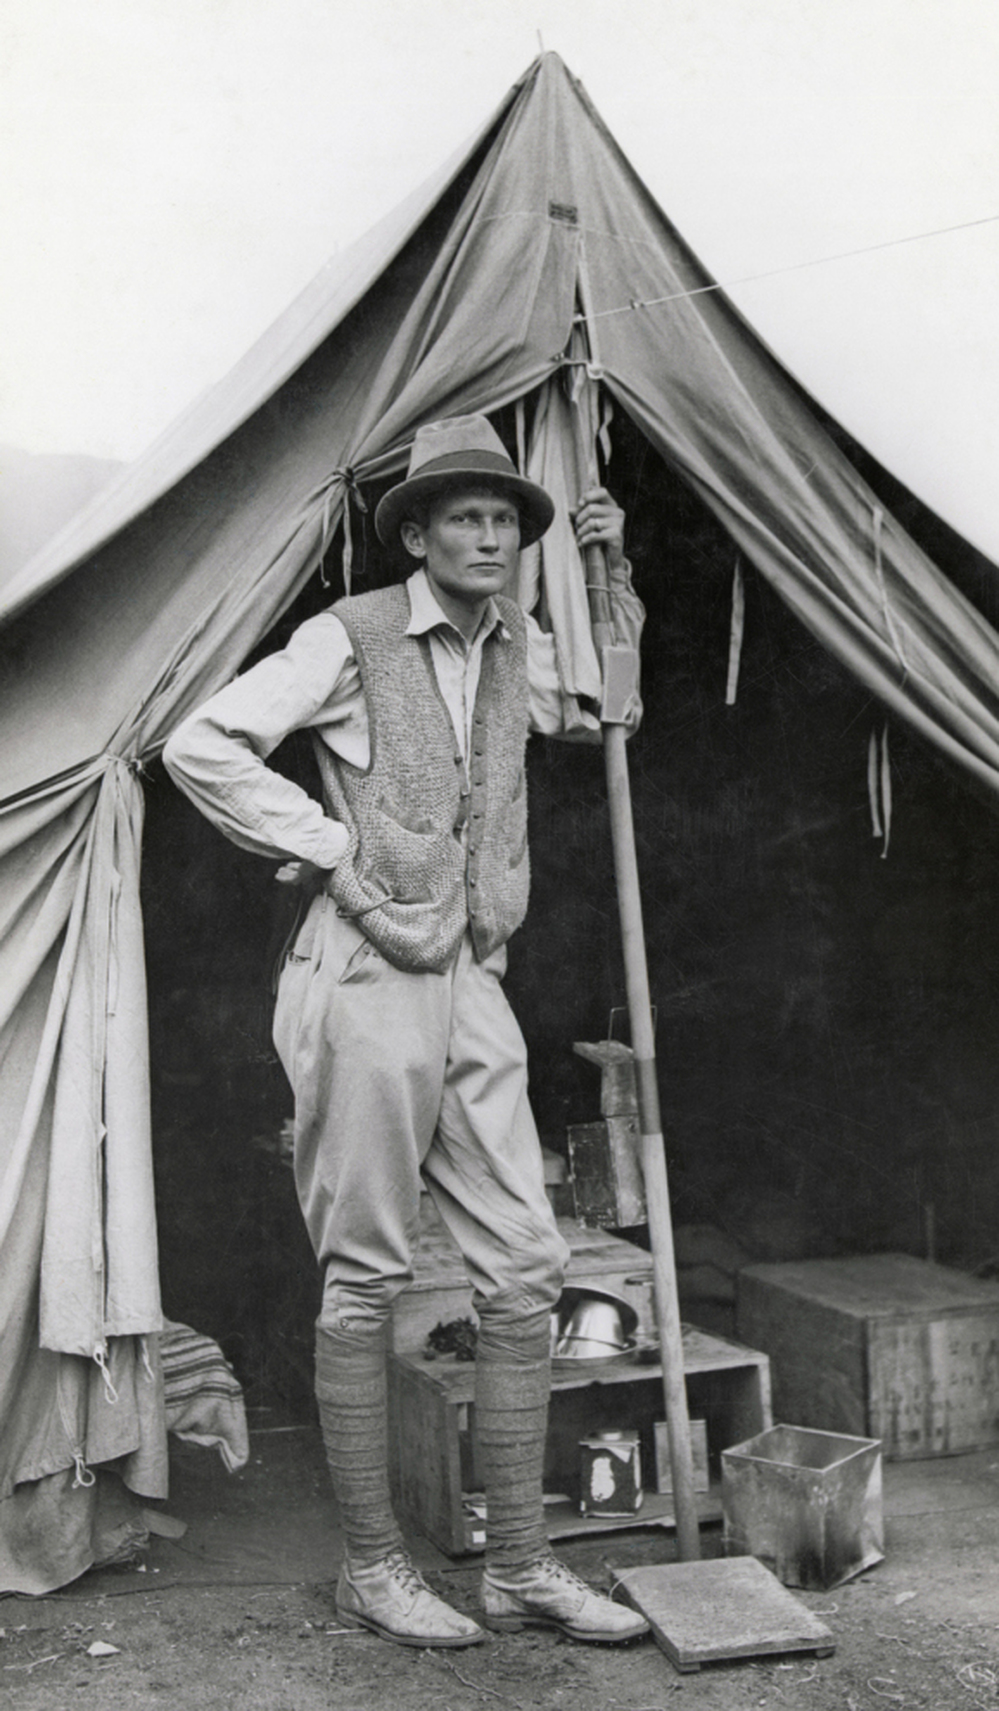 Explorer Hiram Bingham poses for a photo.